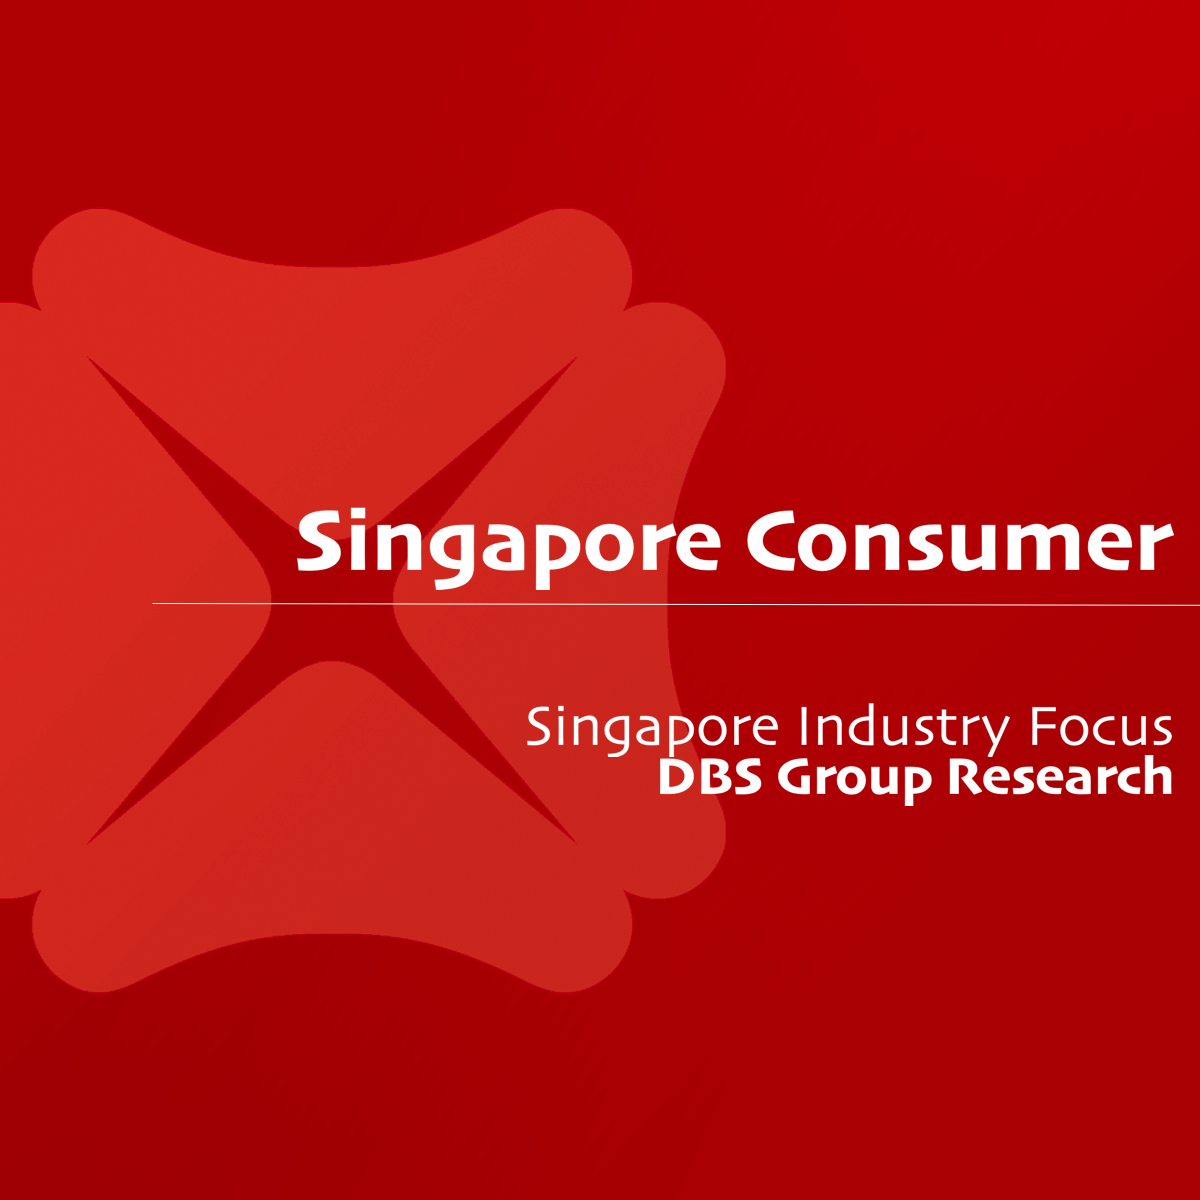 Singapore Downstream Consumer - DBS Research | SGinvestors.io